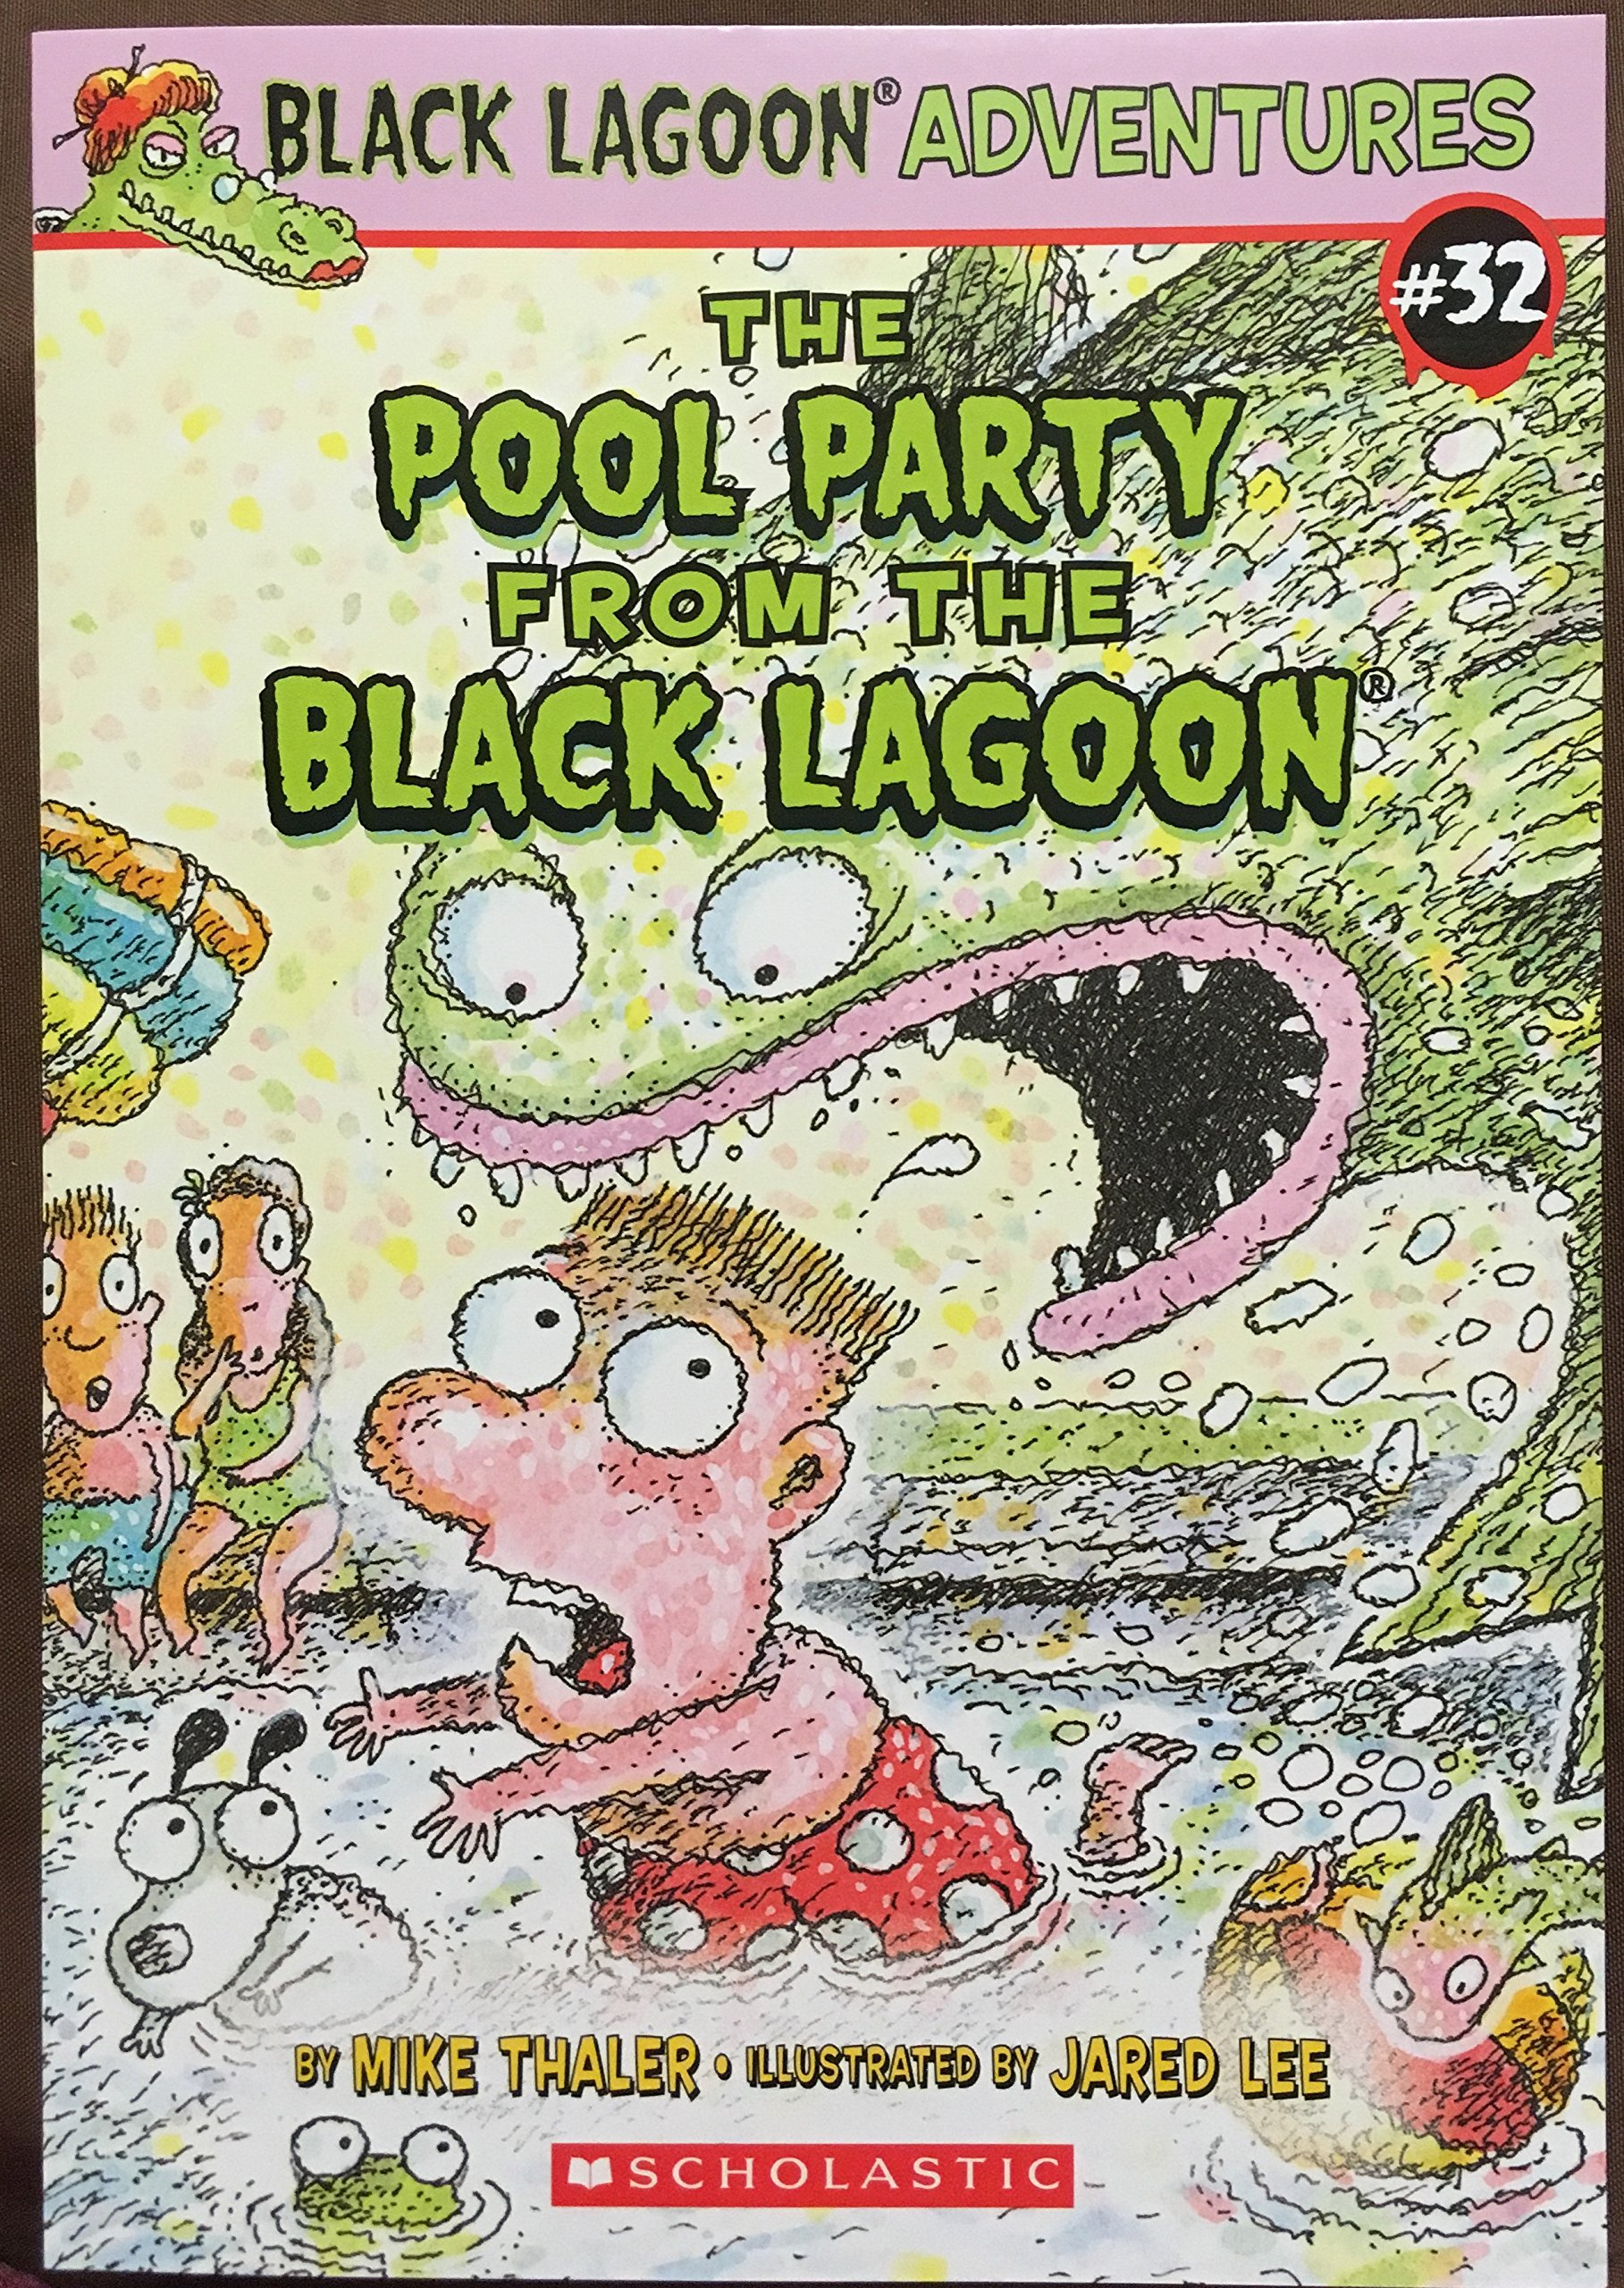 The Pool Party From The Black Lagoon: Mike Thaler: 9780545850735:  Amazon.com: Books